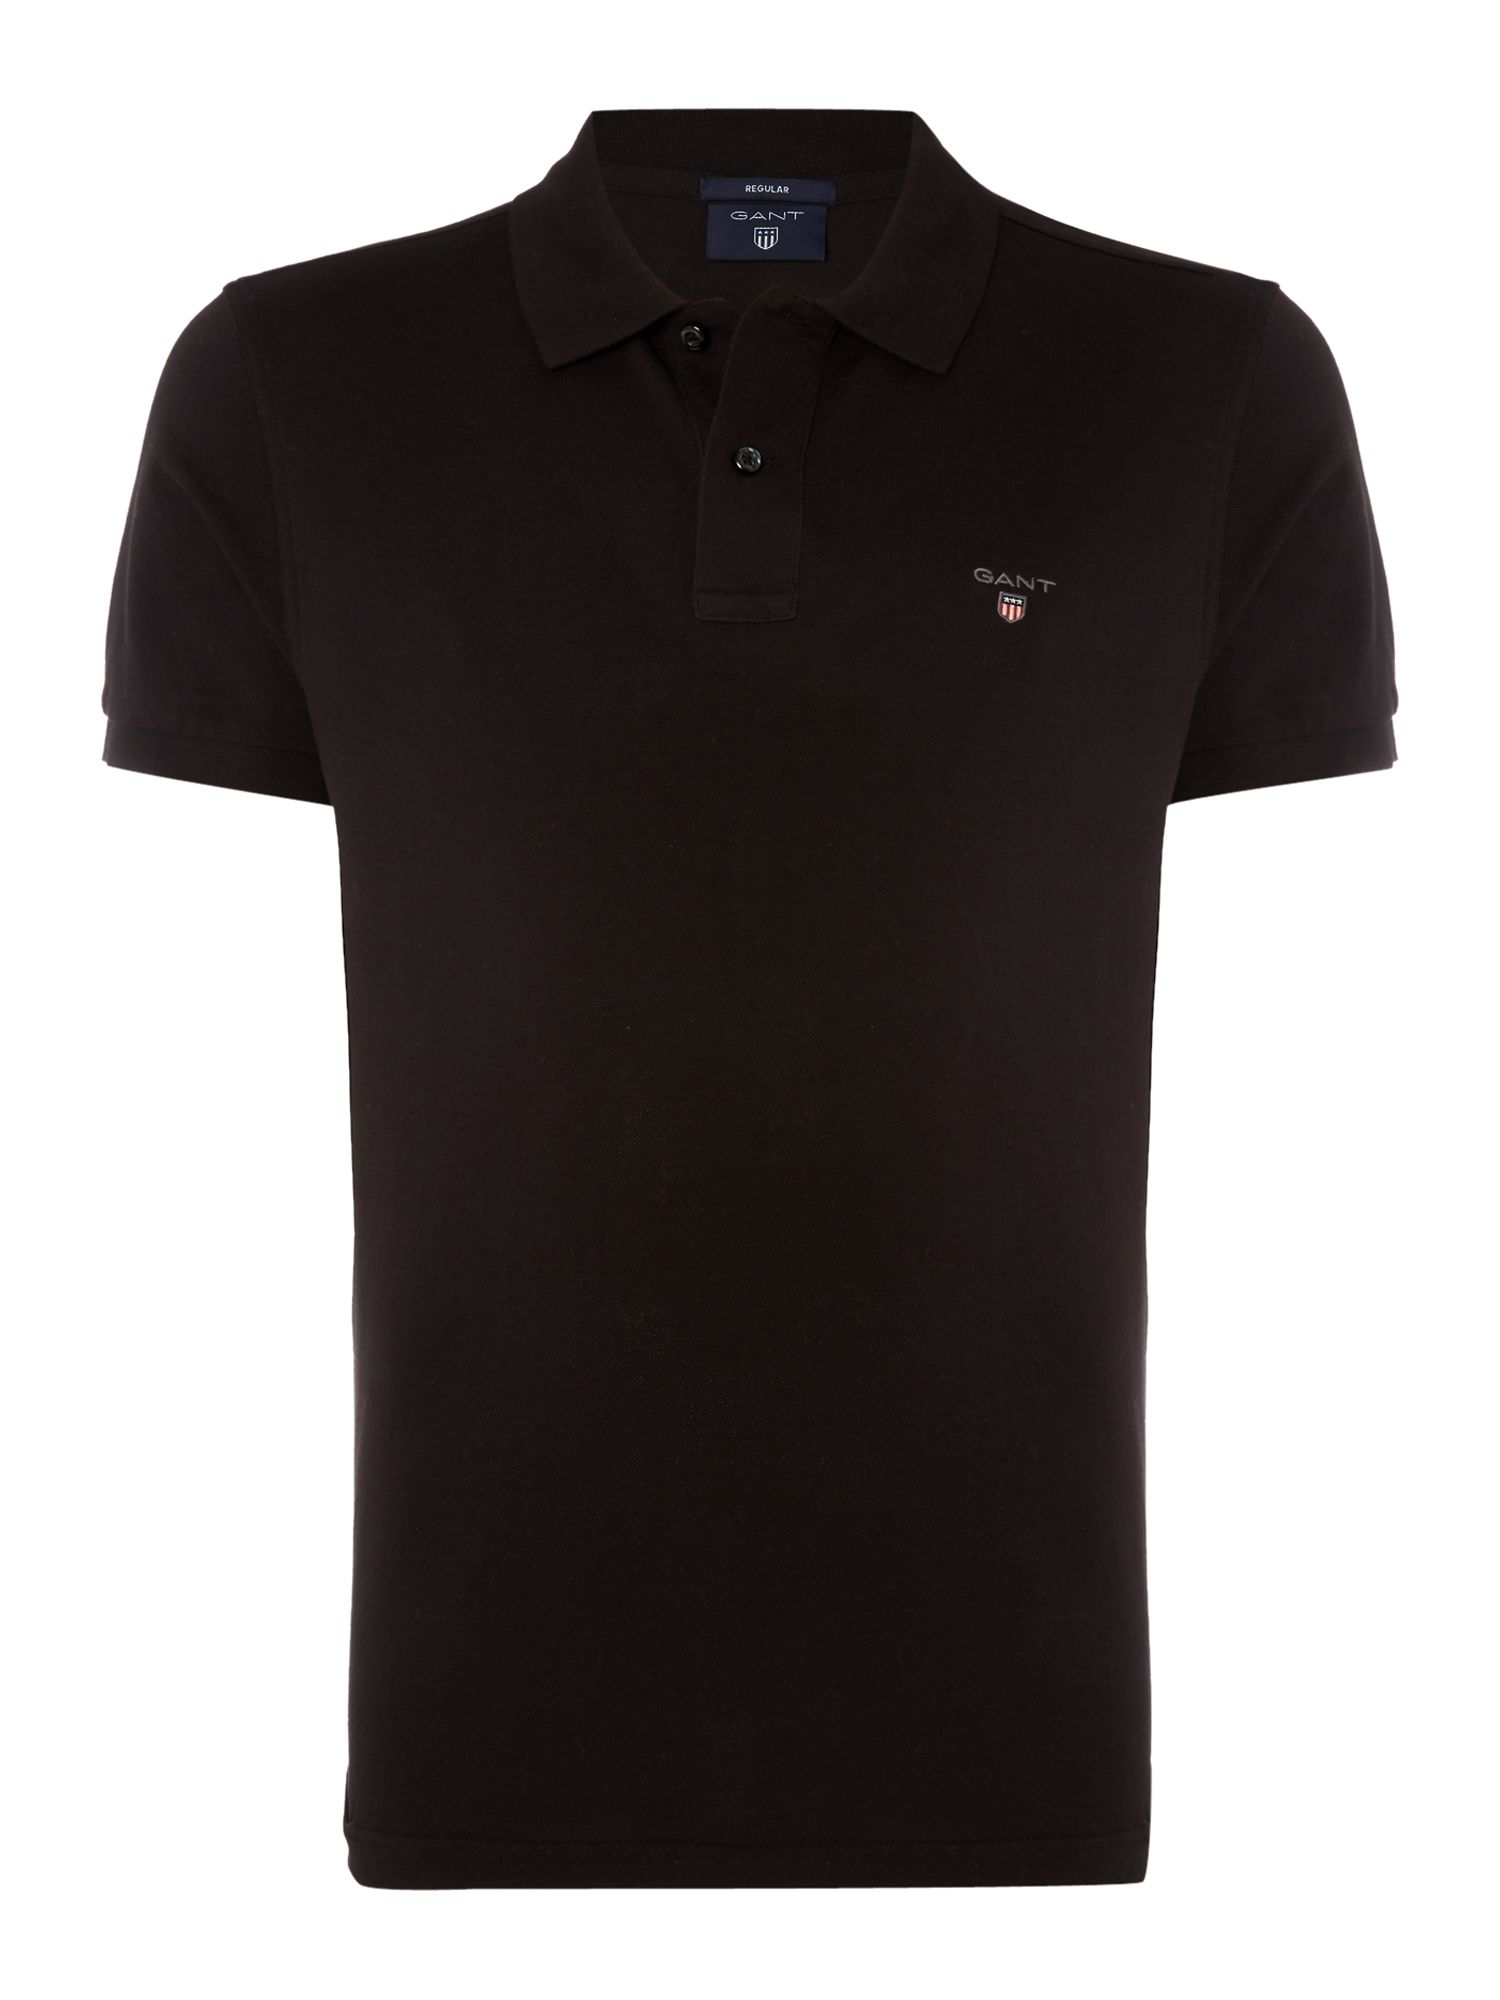 Men's Gant Original Pique Short Sleeve Polo, Black